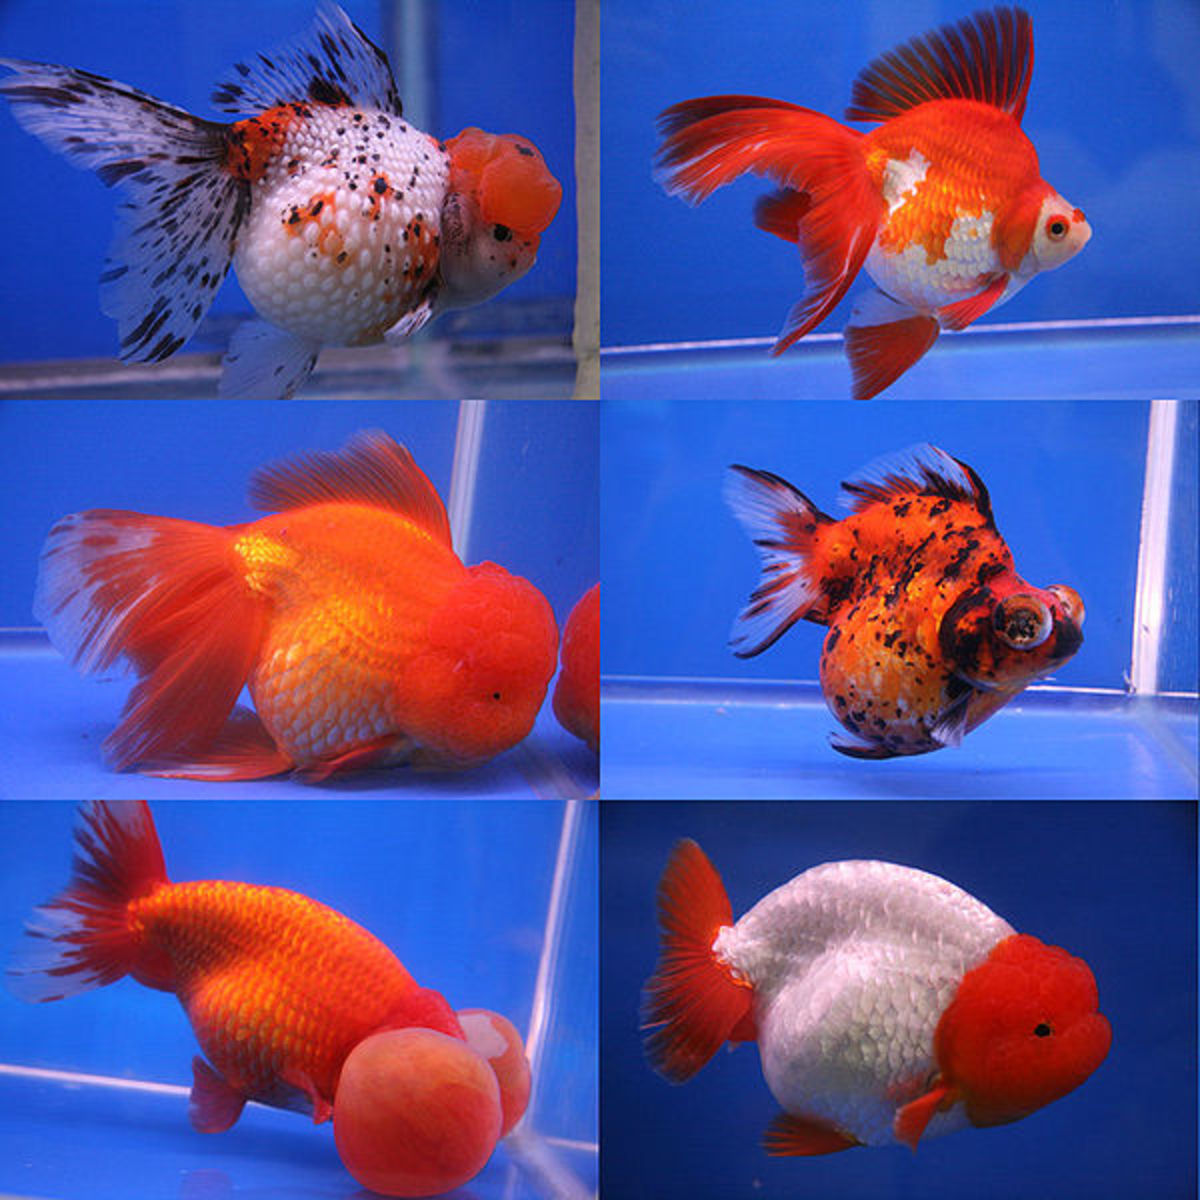 Facts and Information on Goldfish